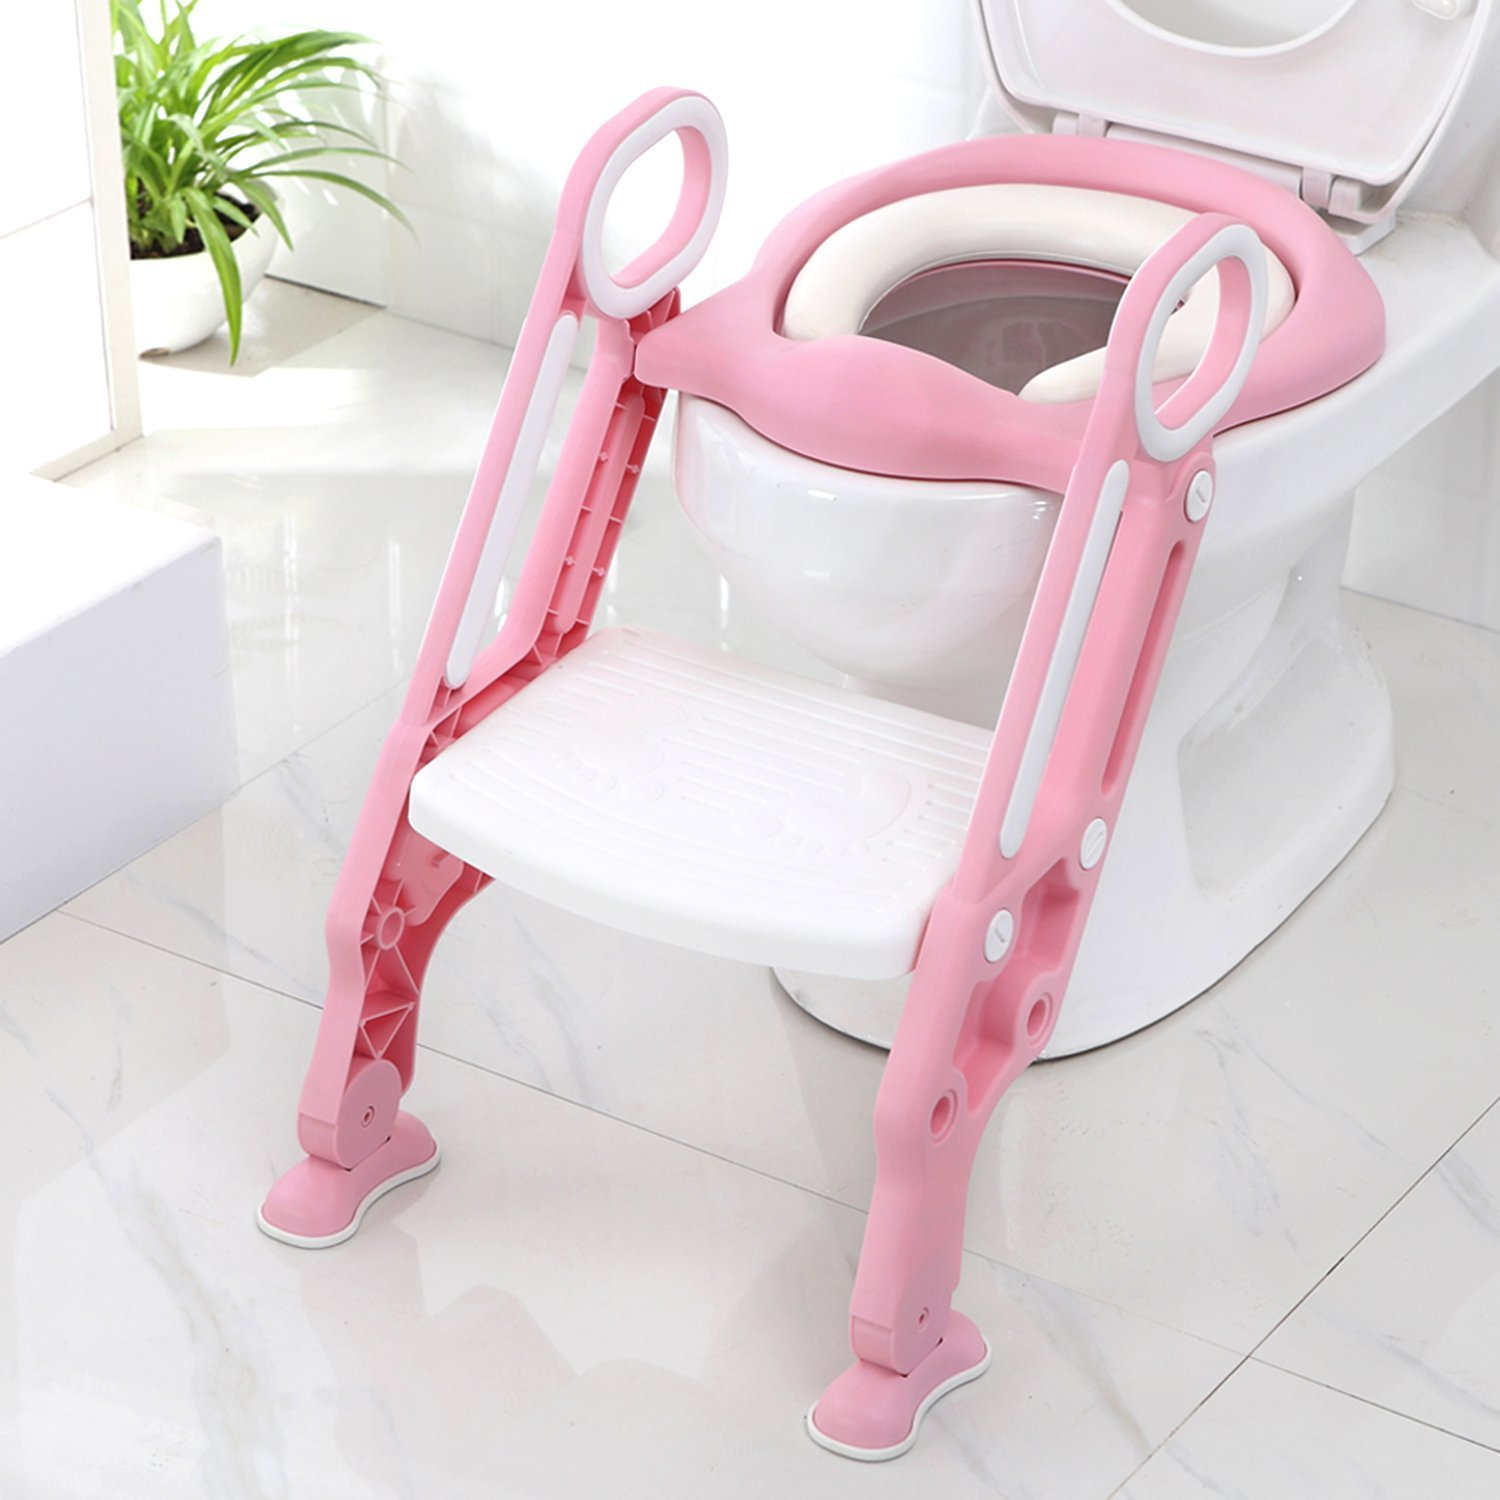 Potty Toilet Trainer Seat with Step Stool Ladder Adjustable Baby Toddler Kid Potty Toilet Seat for Boy and Girl Children's Toilet Training Seat Chair Mobay MB-MTT002